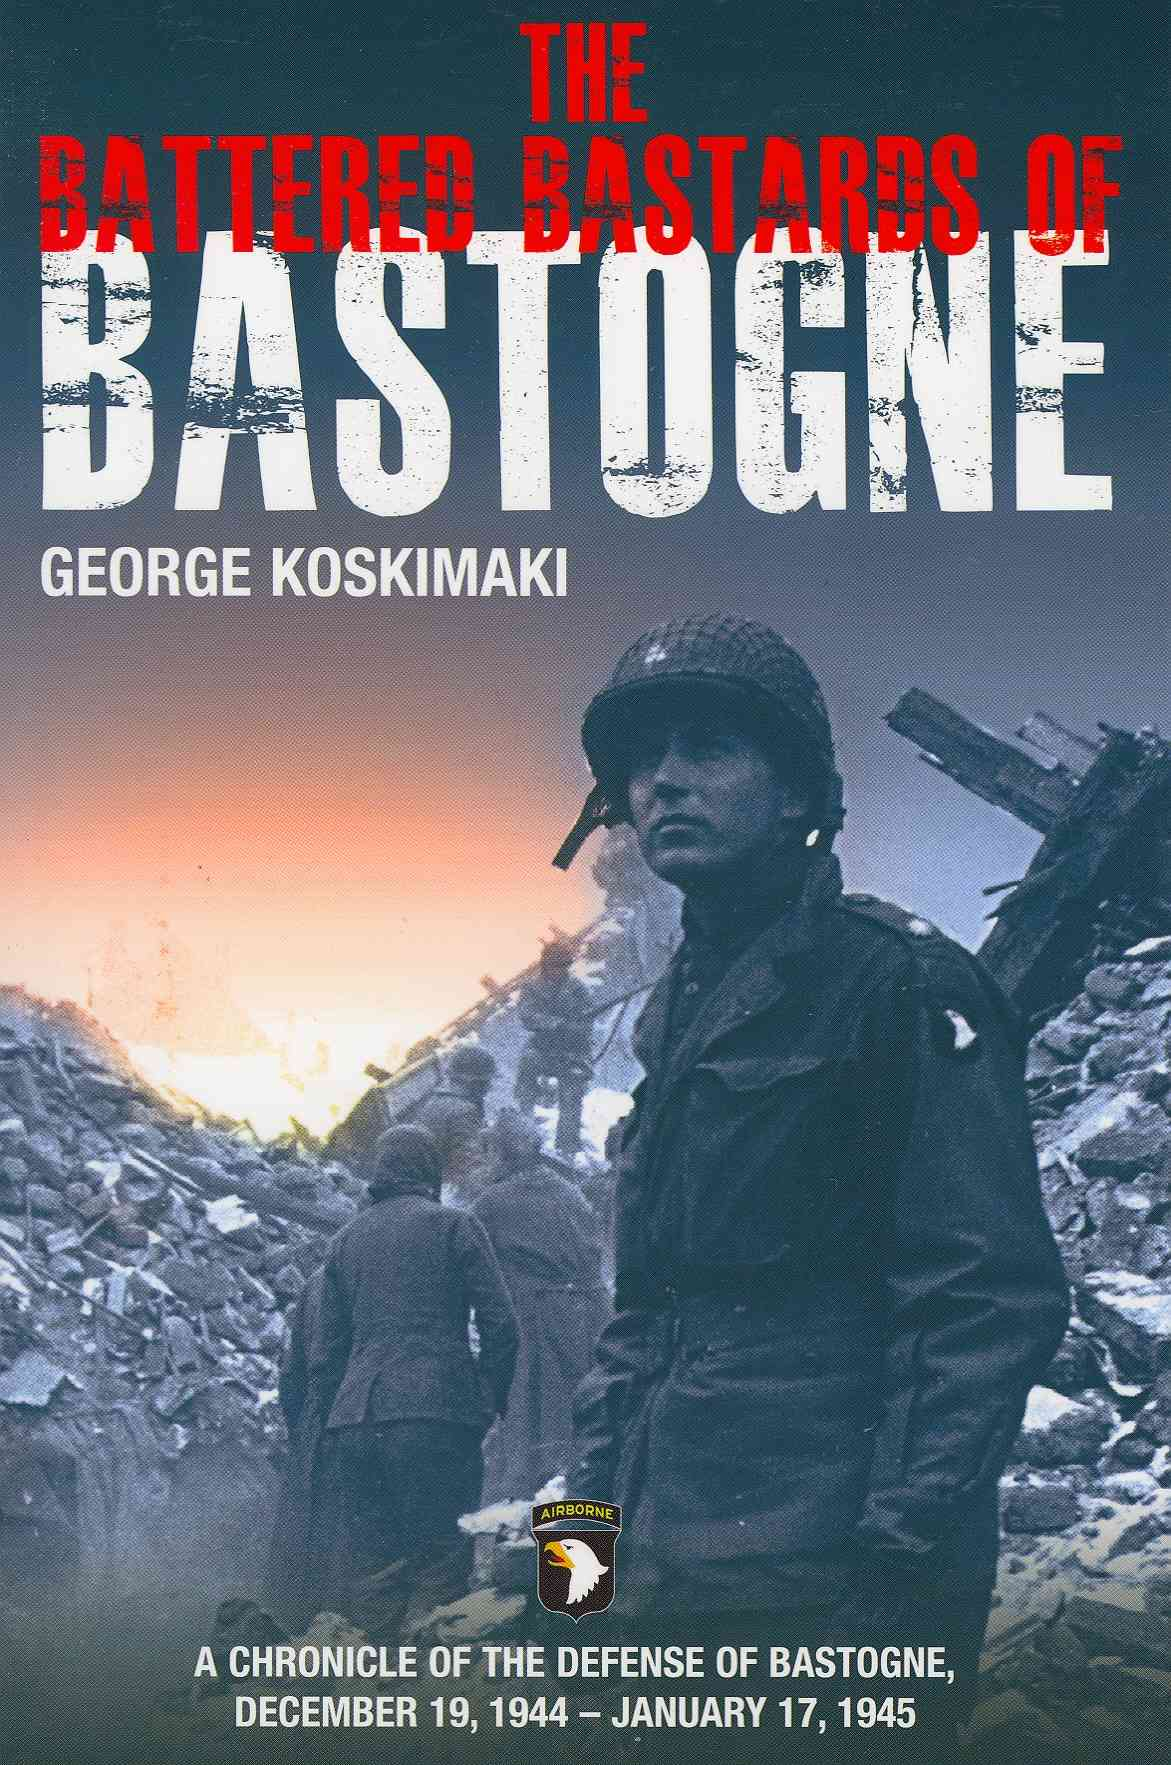 Battered Bastards of Bastogne By Koskimaki, George